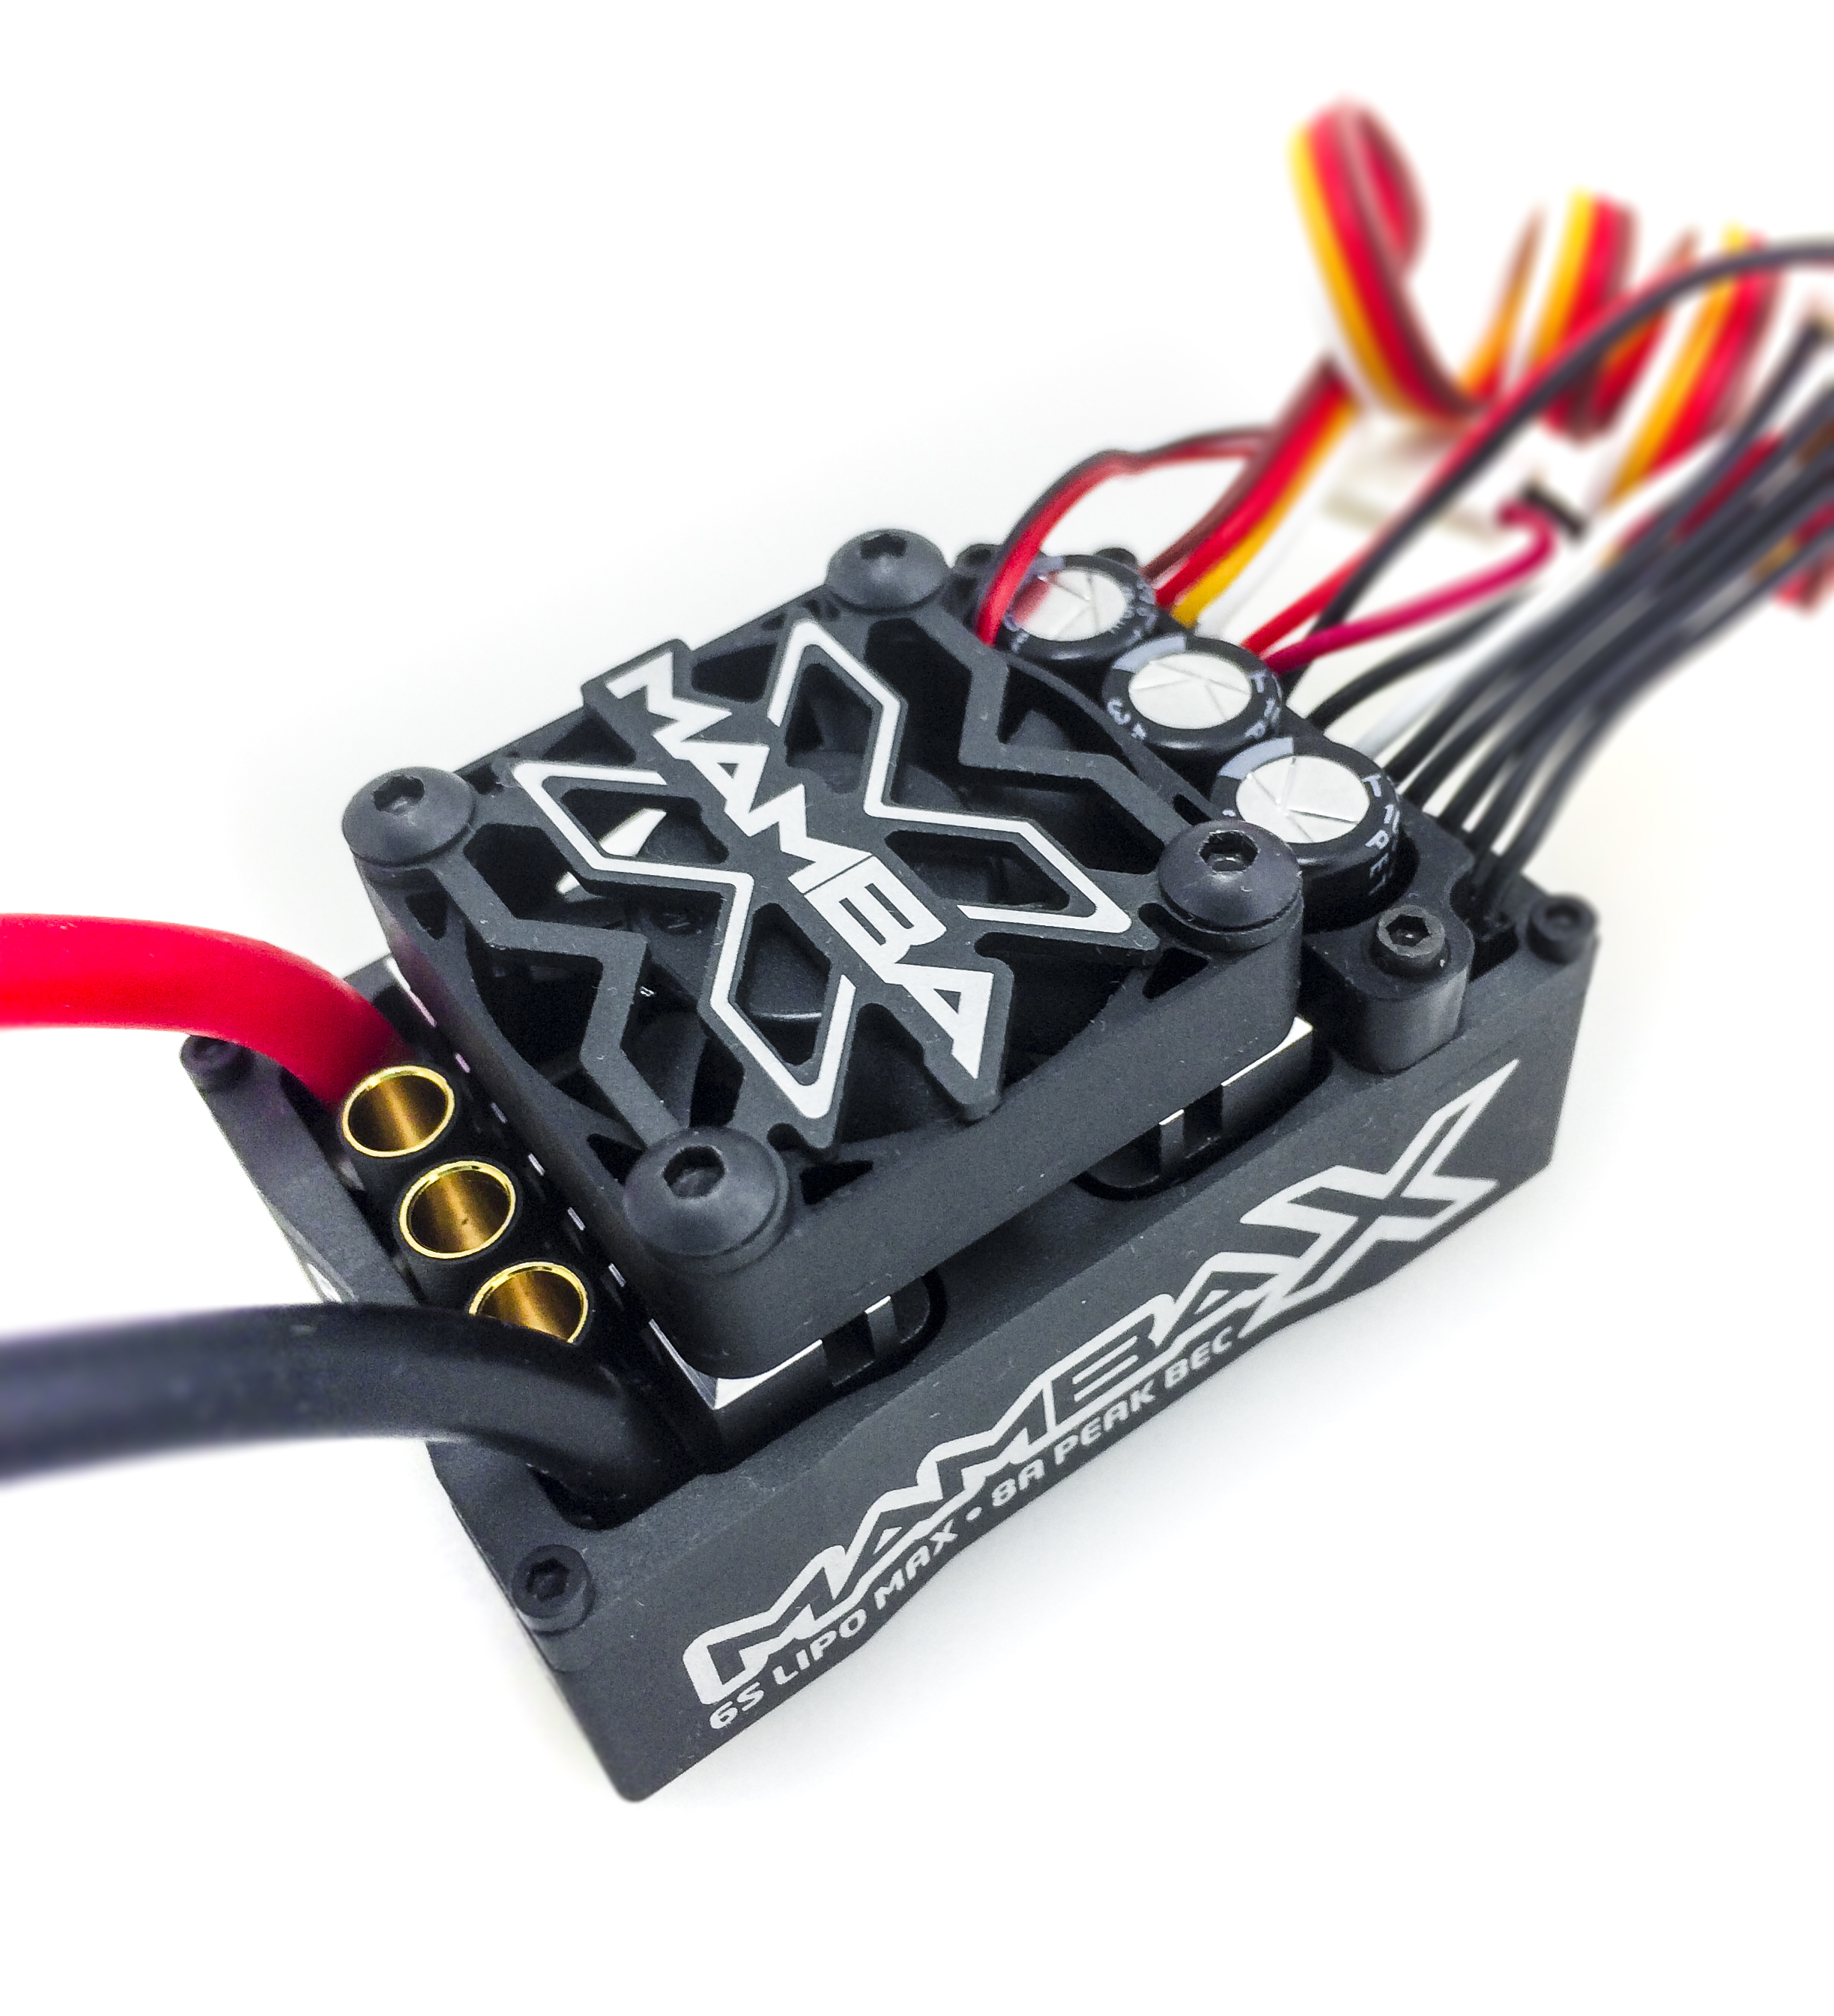 Mamba X - sensored - The Mamba X is made for 1:10th scale applications 3S-6S. It can also be used in lightweight 1:8th scale racing buggies up to 4S. However, this is pushing the limits of its capabilities and should only be done by experienced racers.